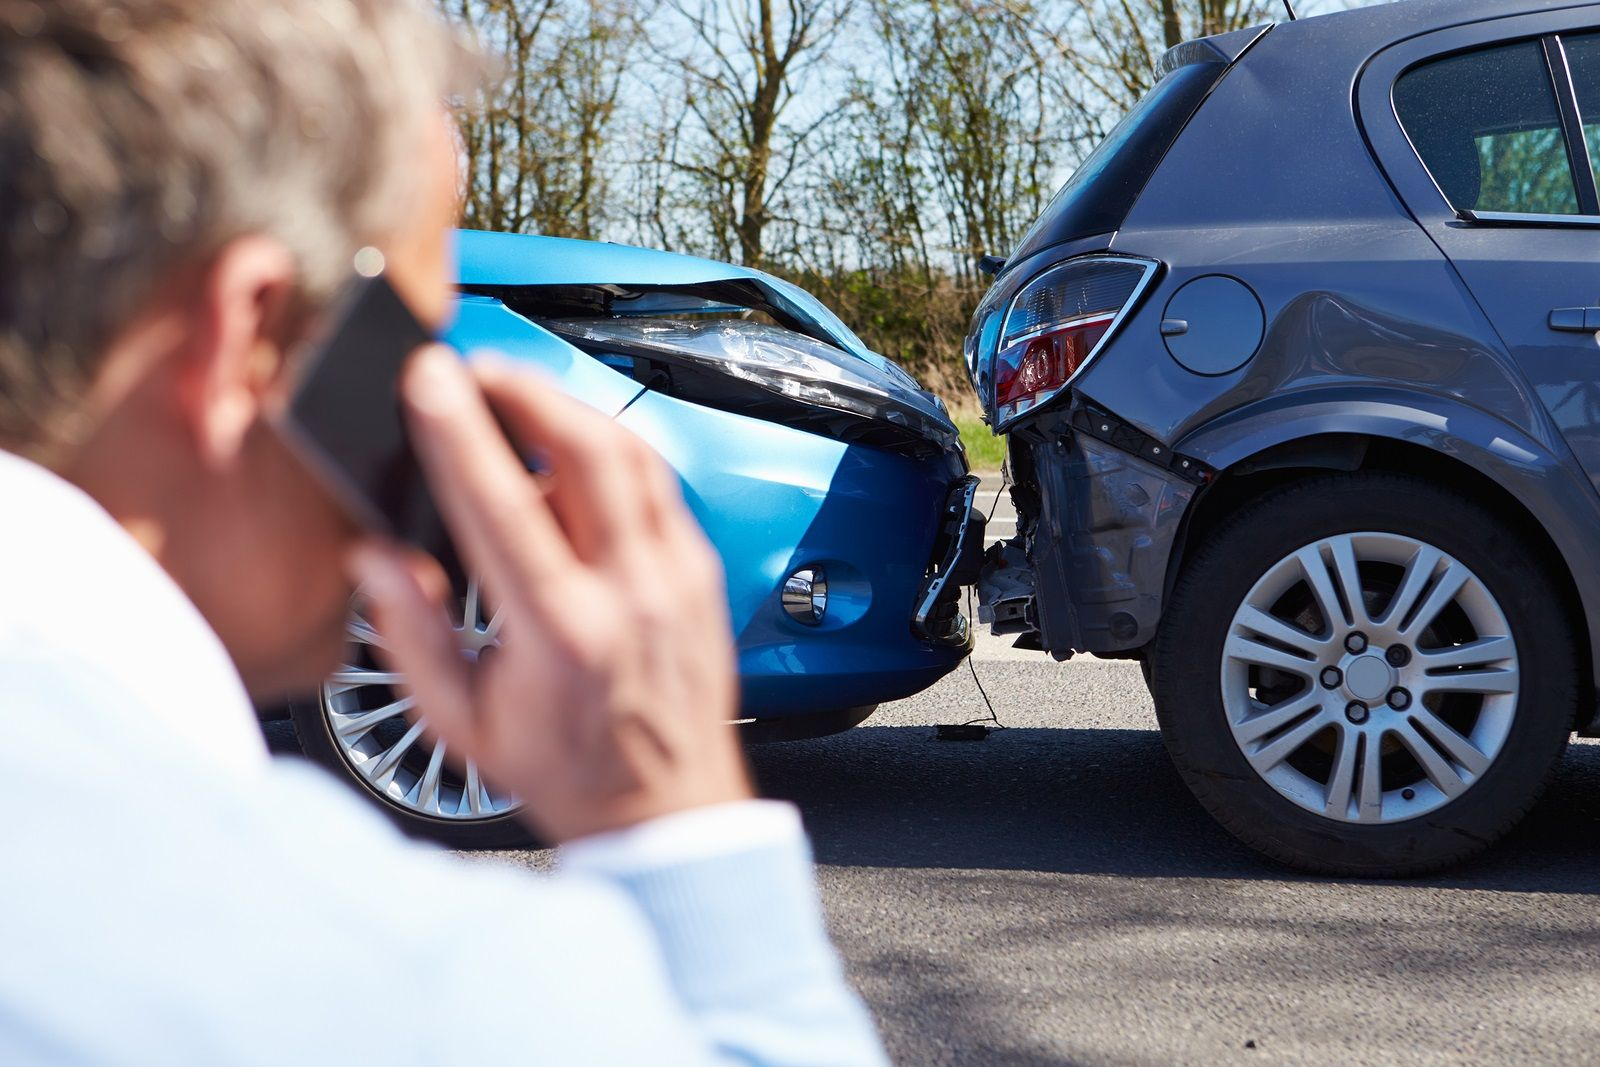 Important Legal Tips For Auto Accidents. Car insurance